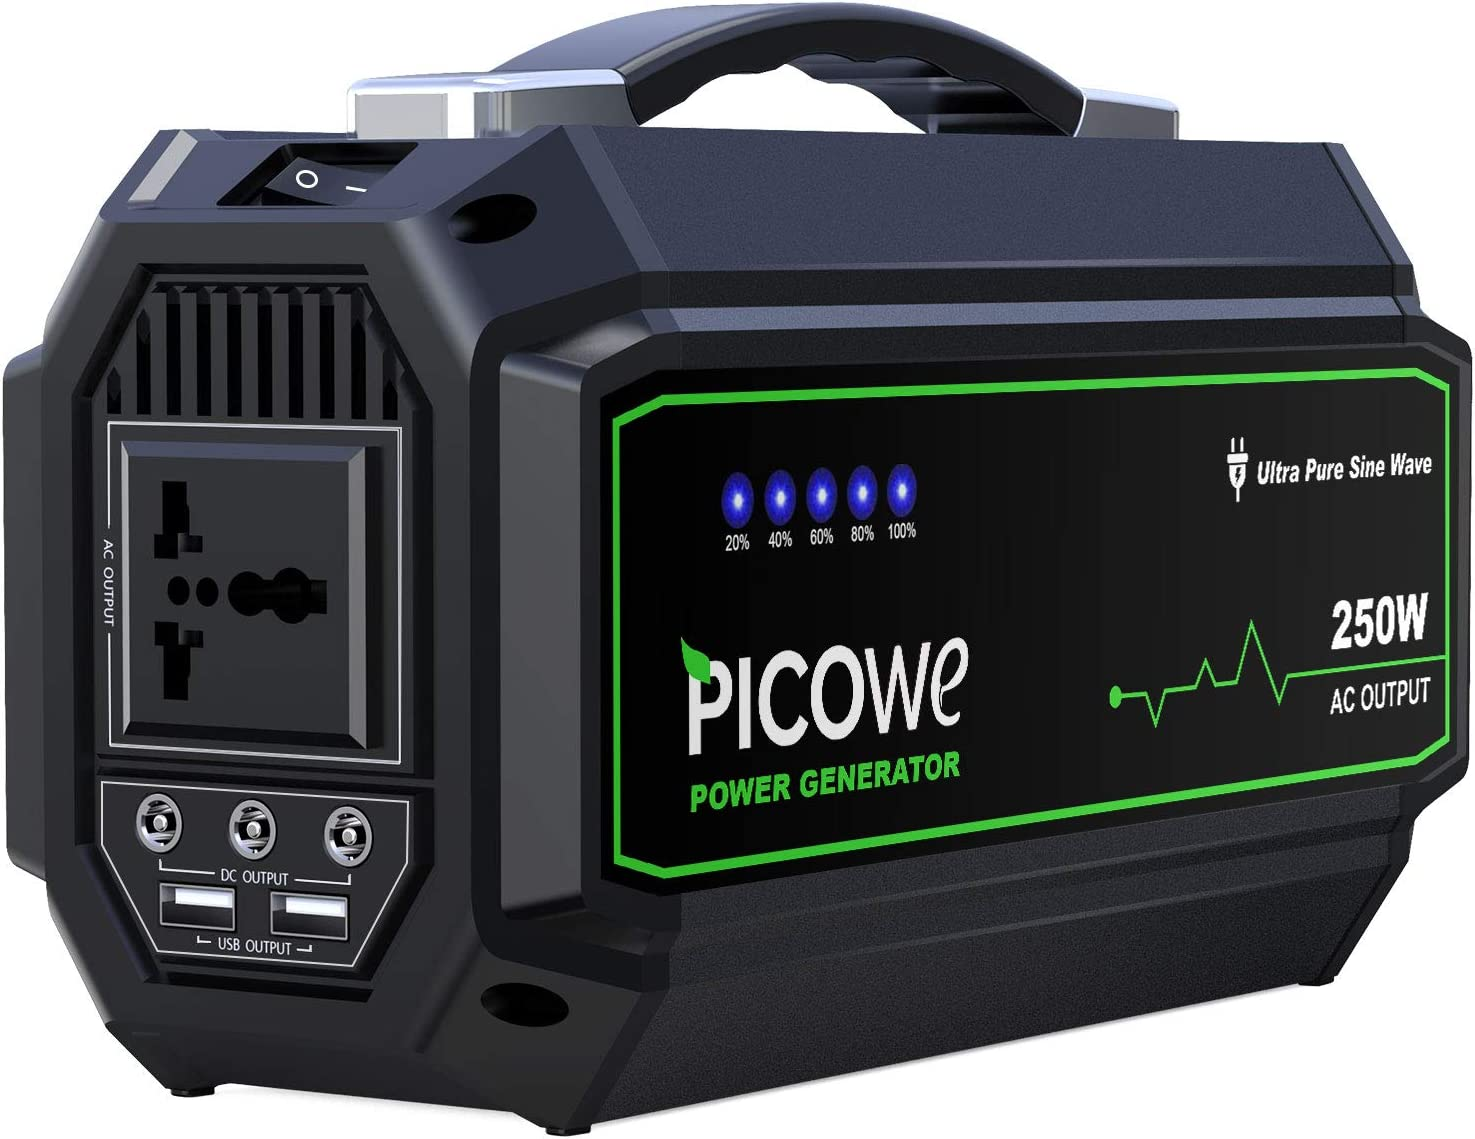 Picowe Portable Power Station 250Wh Rechargeable Lithium Battery Pack Solar Power Generator 110V AC Outlet 3 DC Port 2 USB Ports Emergency Power Supply Backup for CPAP Camping Fishing Travel